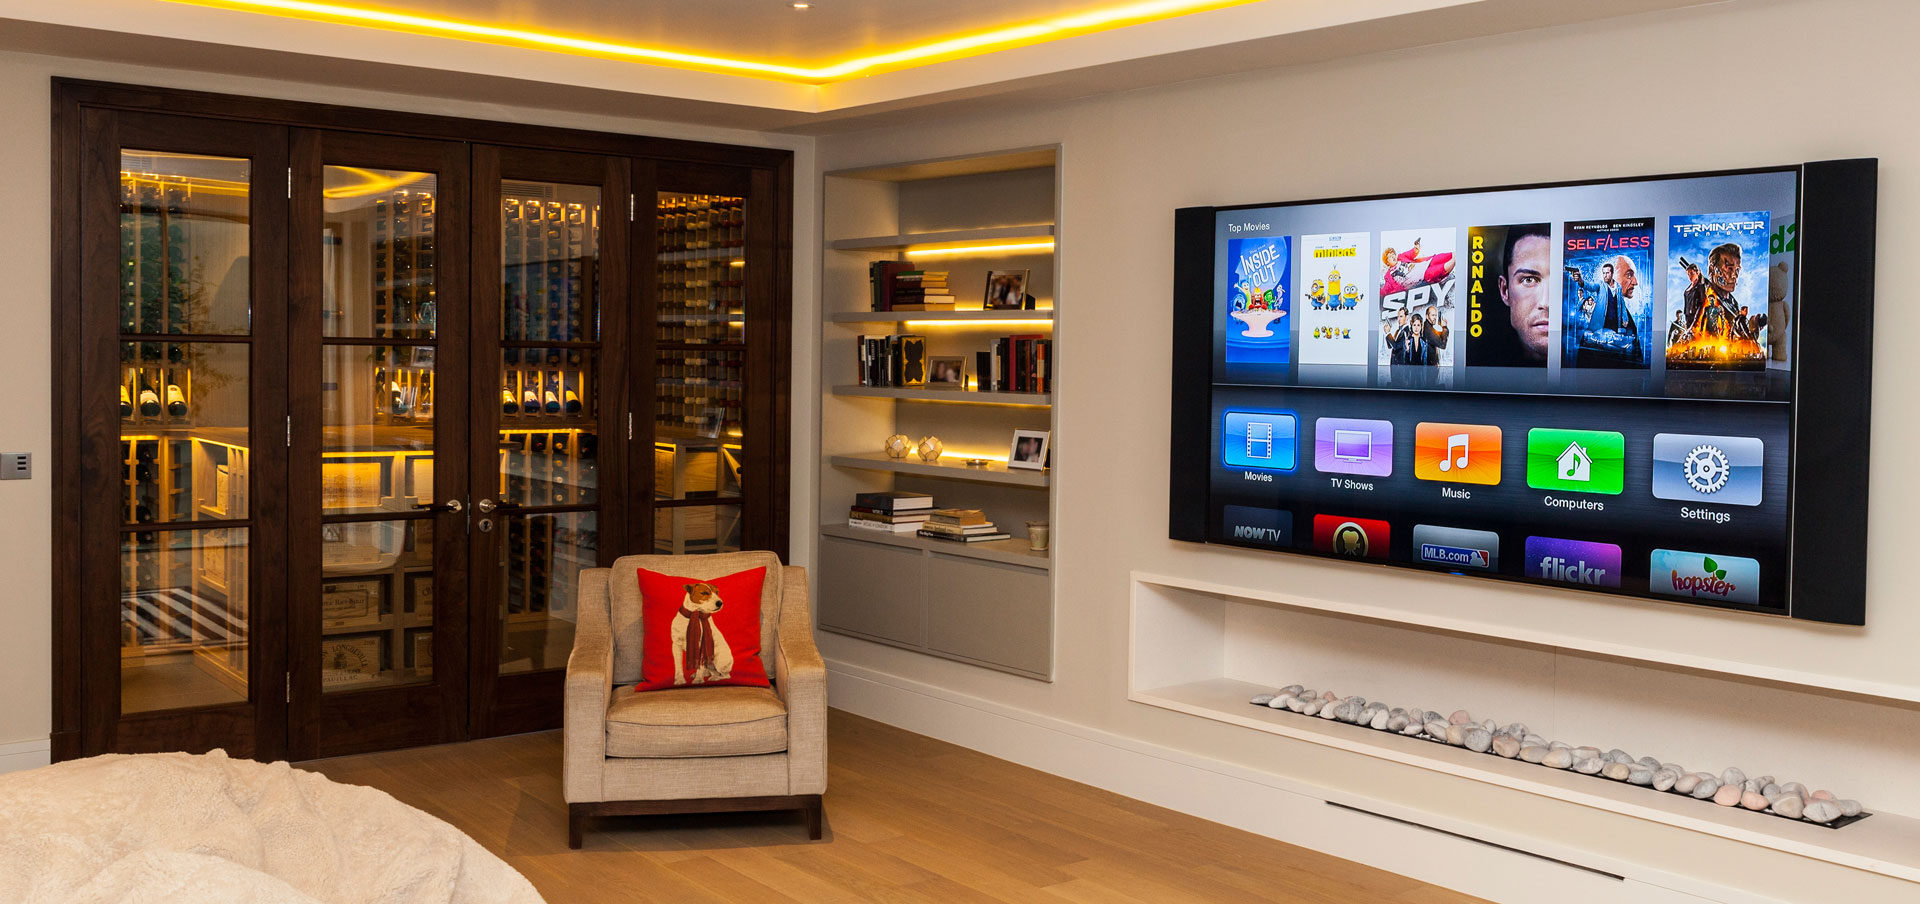 Smart Home Technology and Home Entertainment & Automation designed Visionworks in London